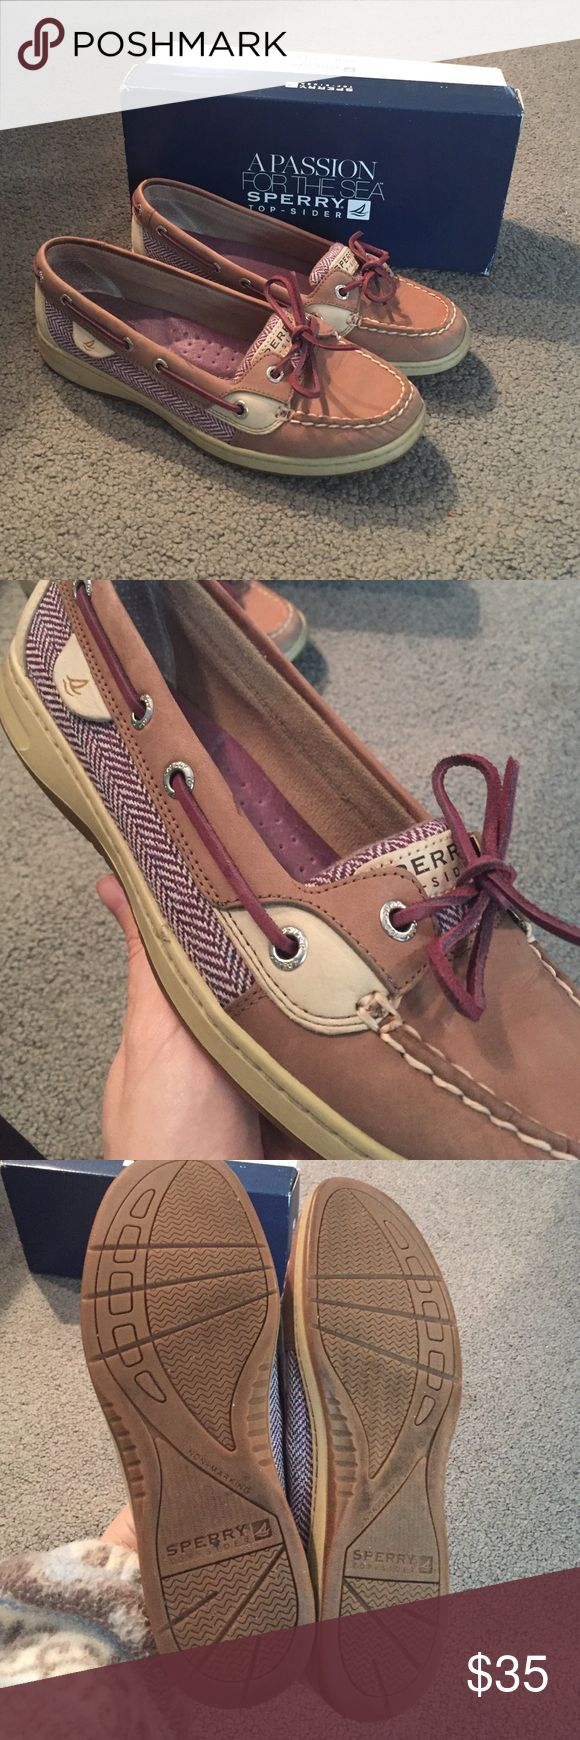 Sperry Angelfish Boat Shoes Hardly worn sperry boat shoes with an ADORABLE purple herringbone pattern. I'm really bummed these don't fit me :( size 8M and almost like new - still have the box too! Sperry Top-Sider Shoes Flats & Loafers